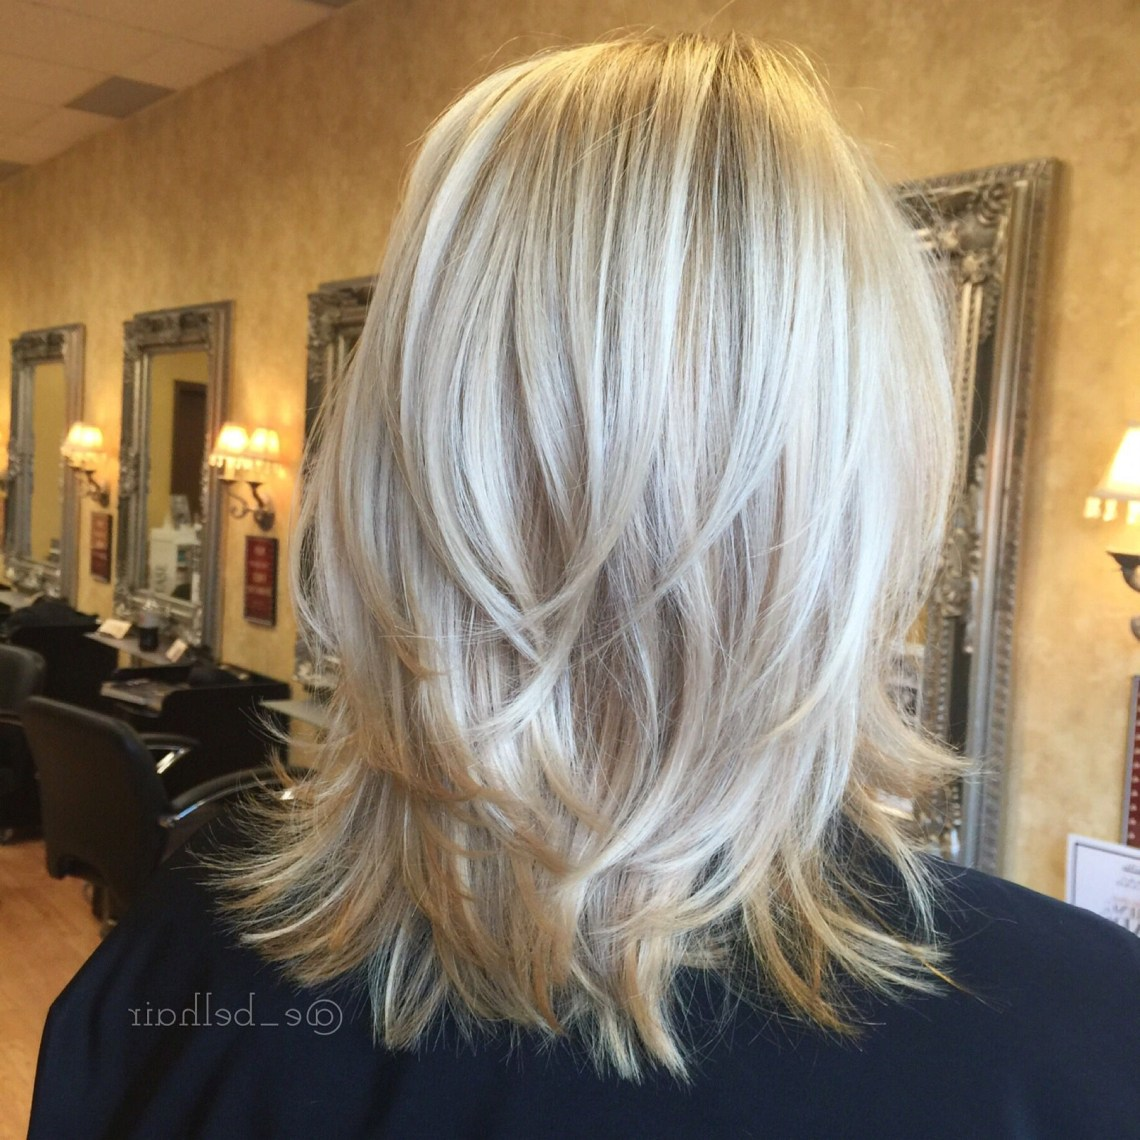 Pin On Hairemily Belcher Blonde Hairstyles For Medium Length Hair